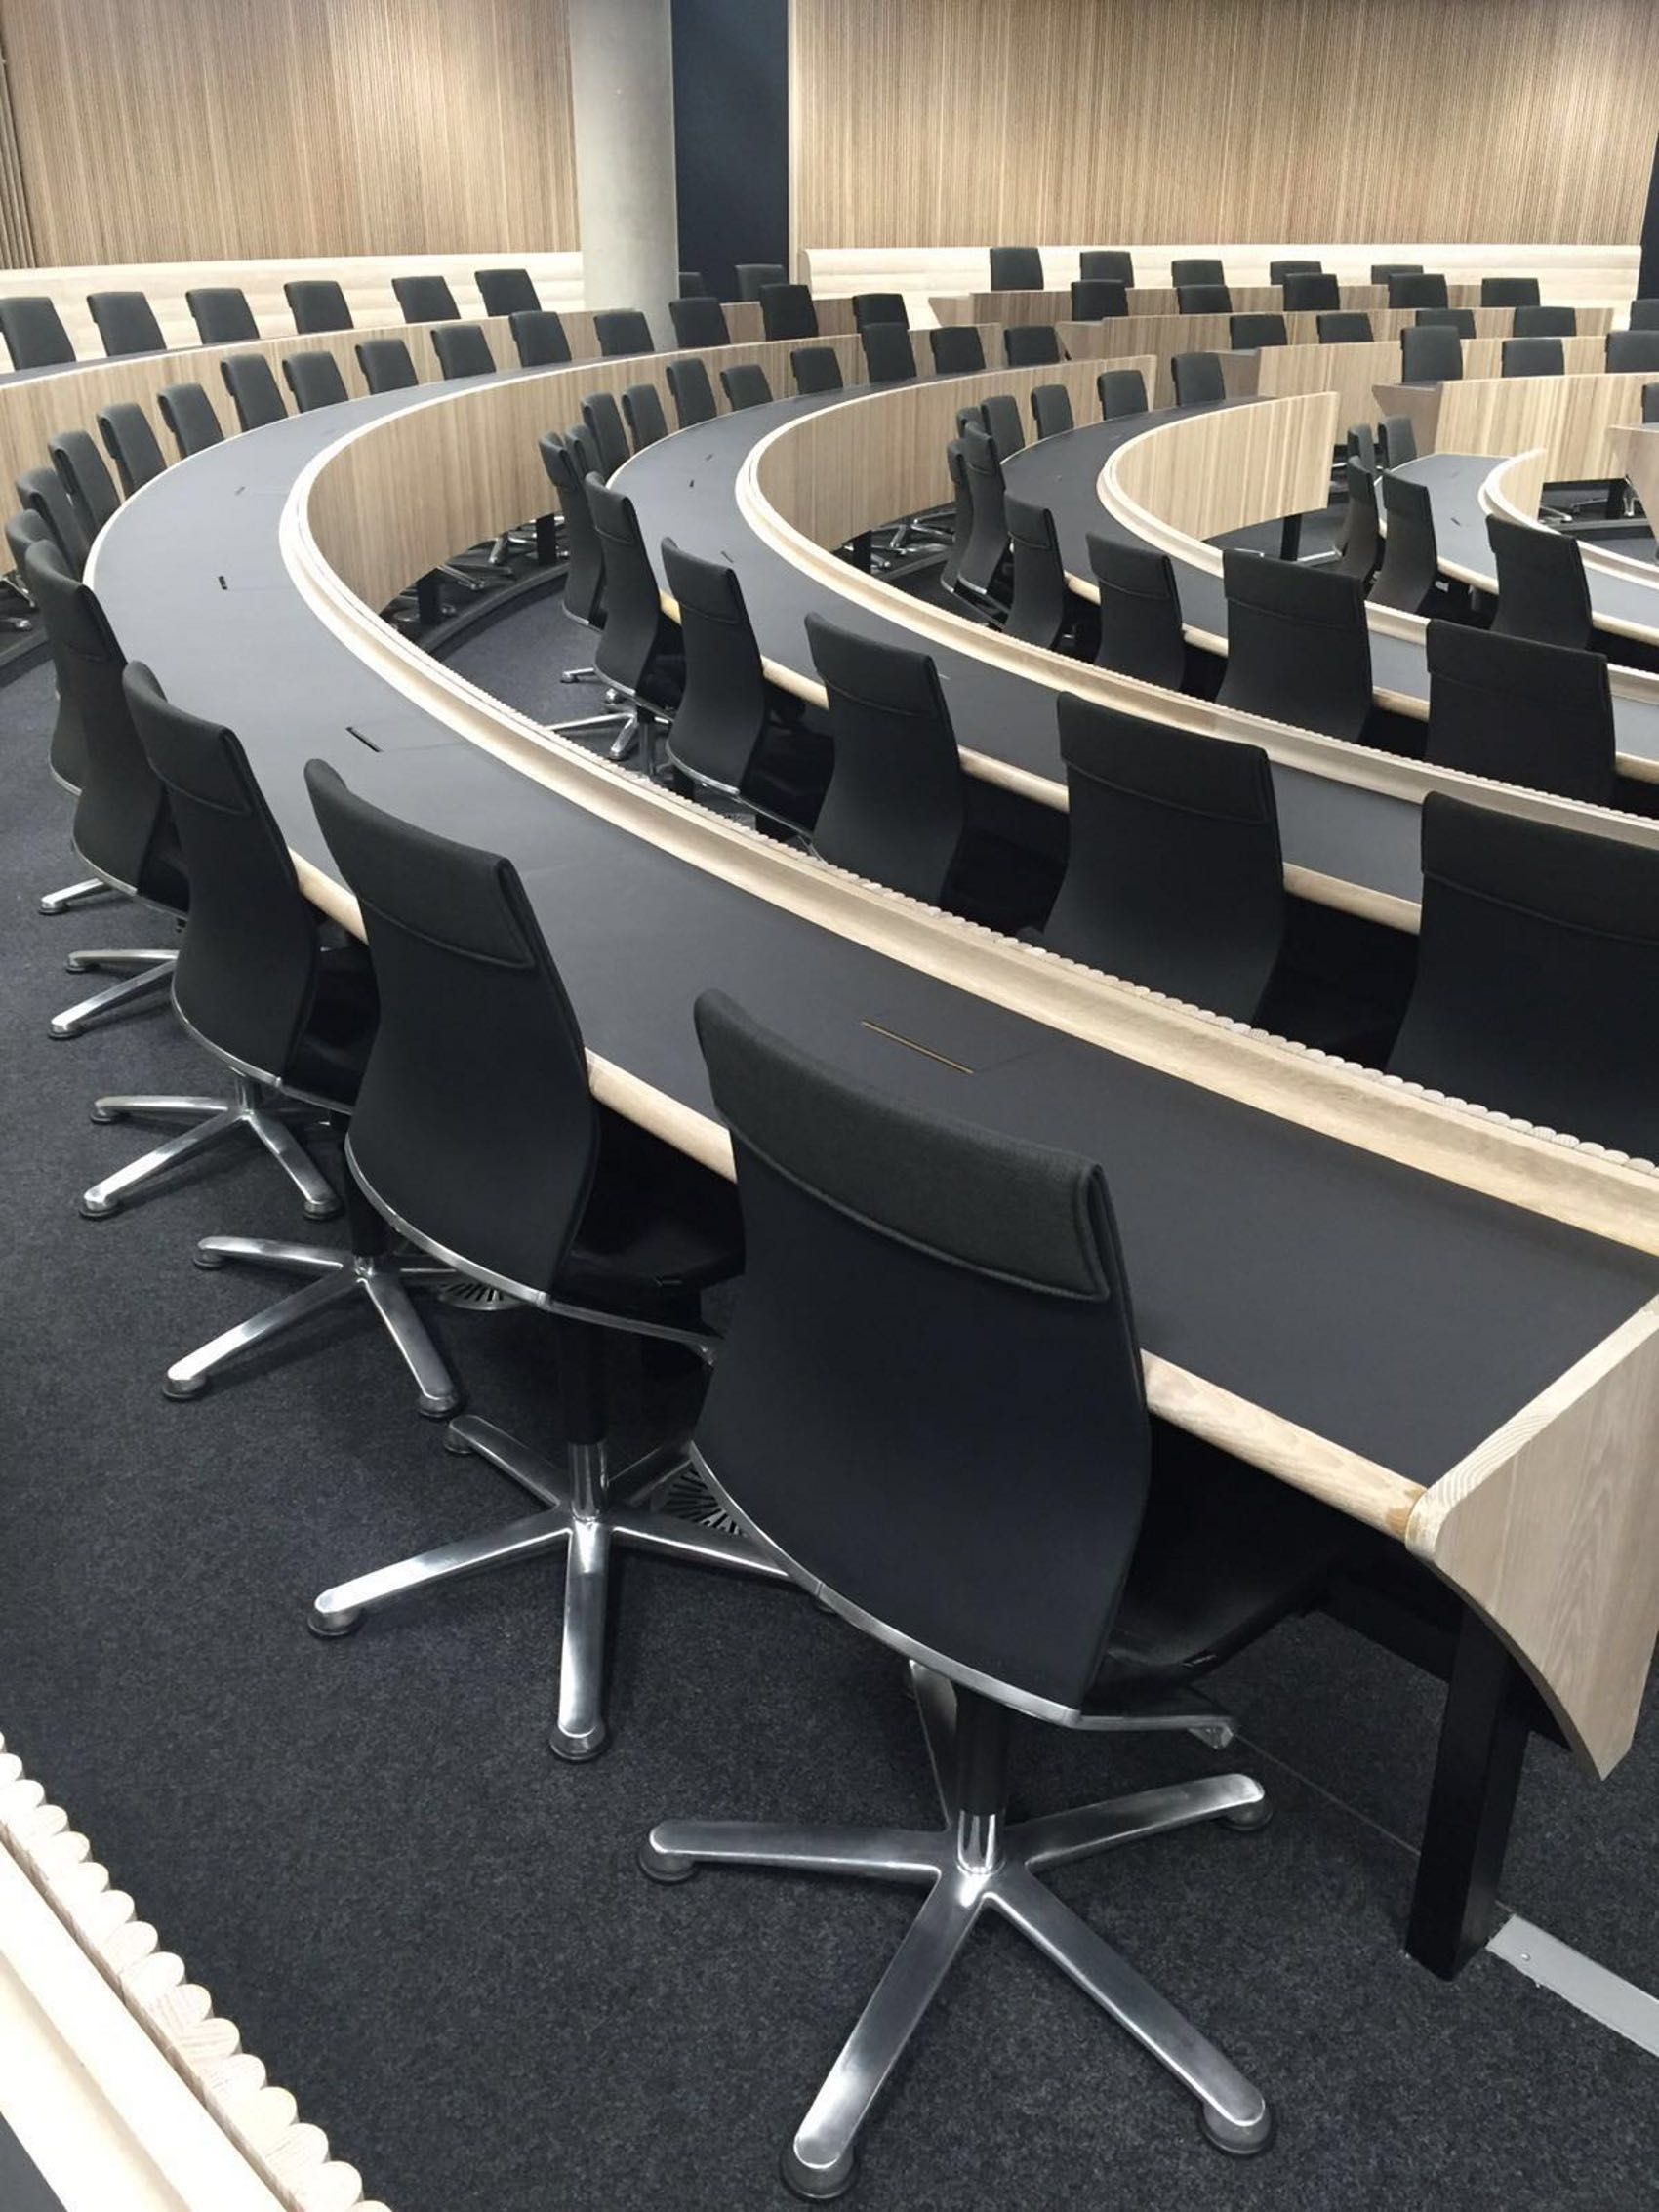 Stupendous Auditorium In Blavatnik School Of Government Oxford Pdpeps Interior Chair Design Pdpepsorg